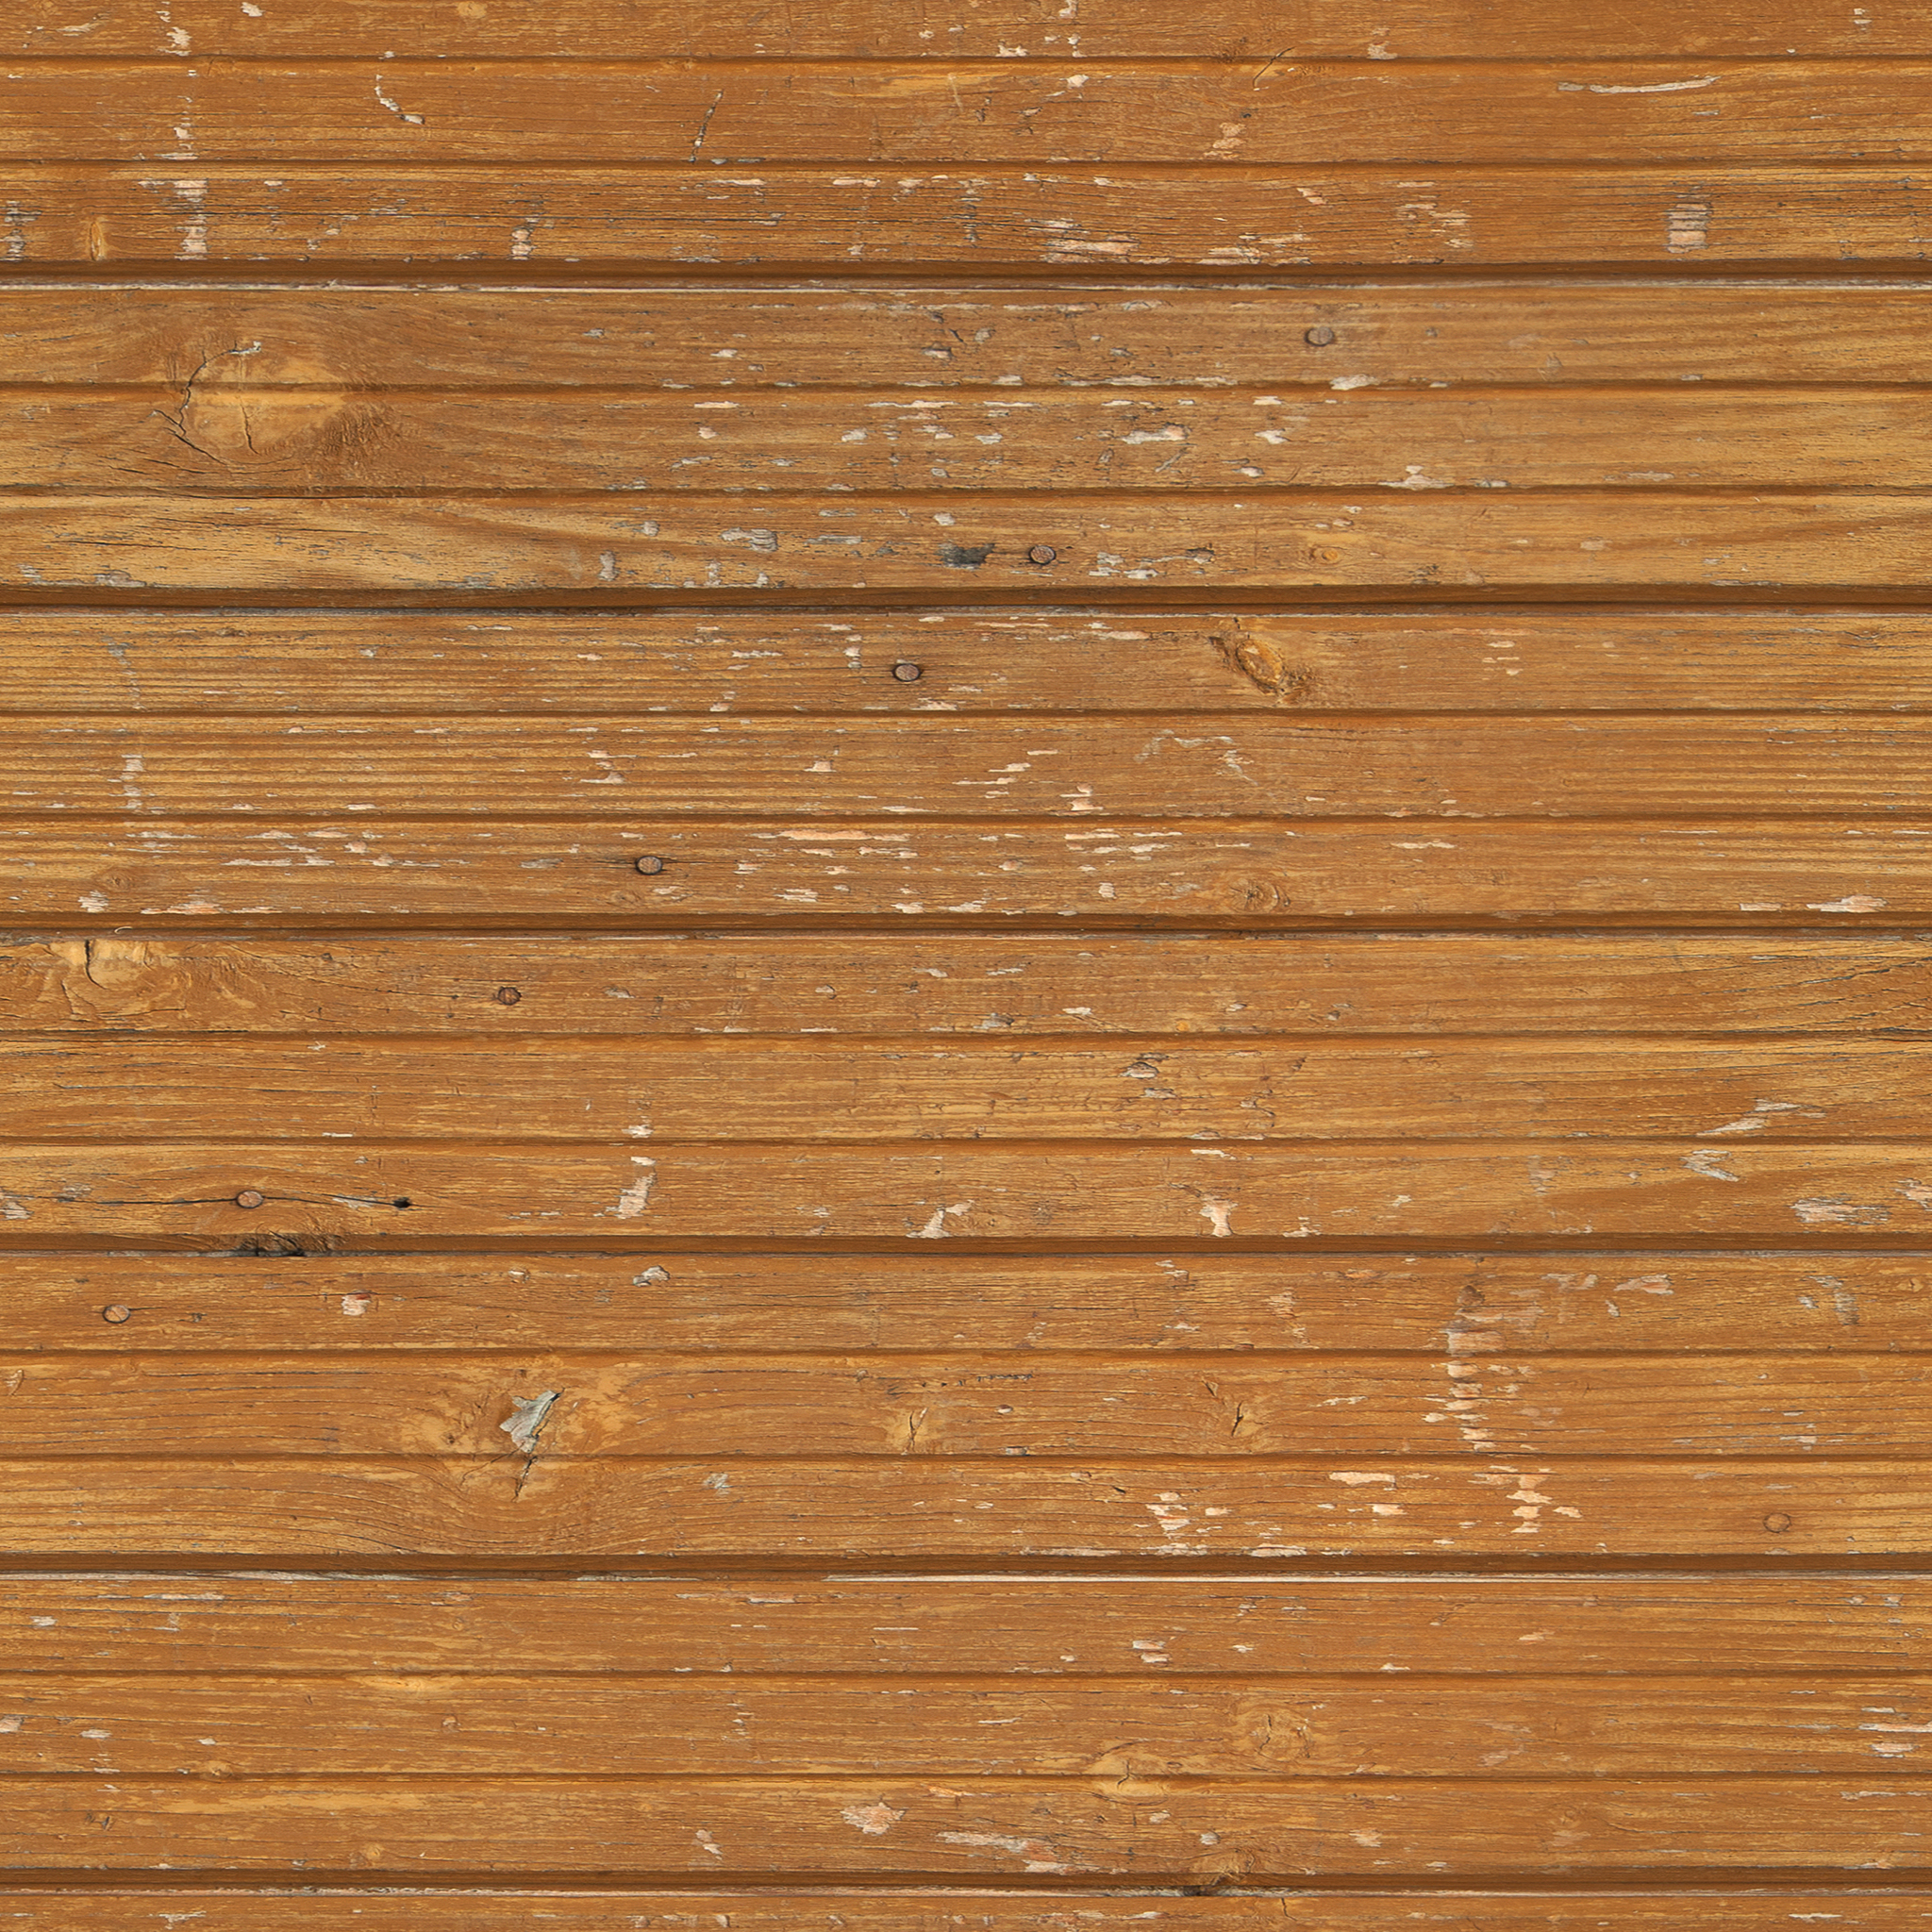 Colonial Wood Siding.jpg